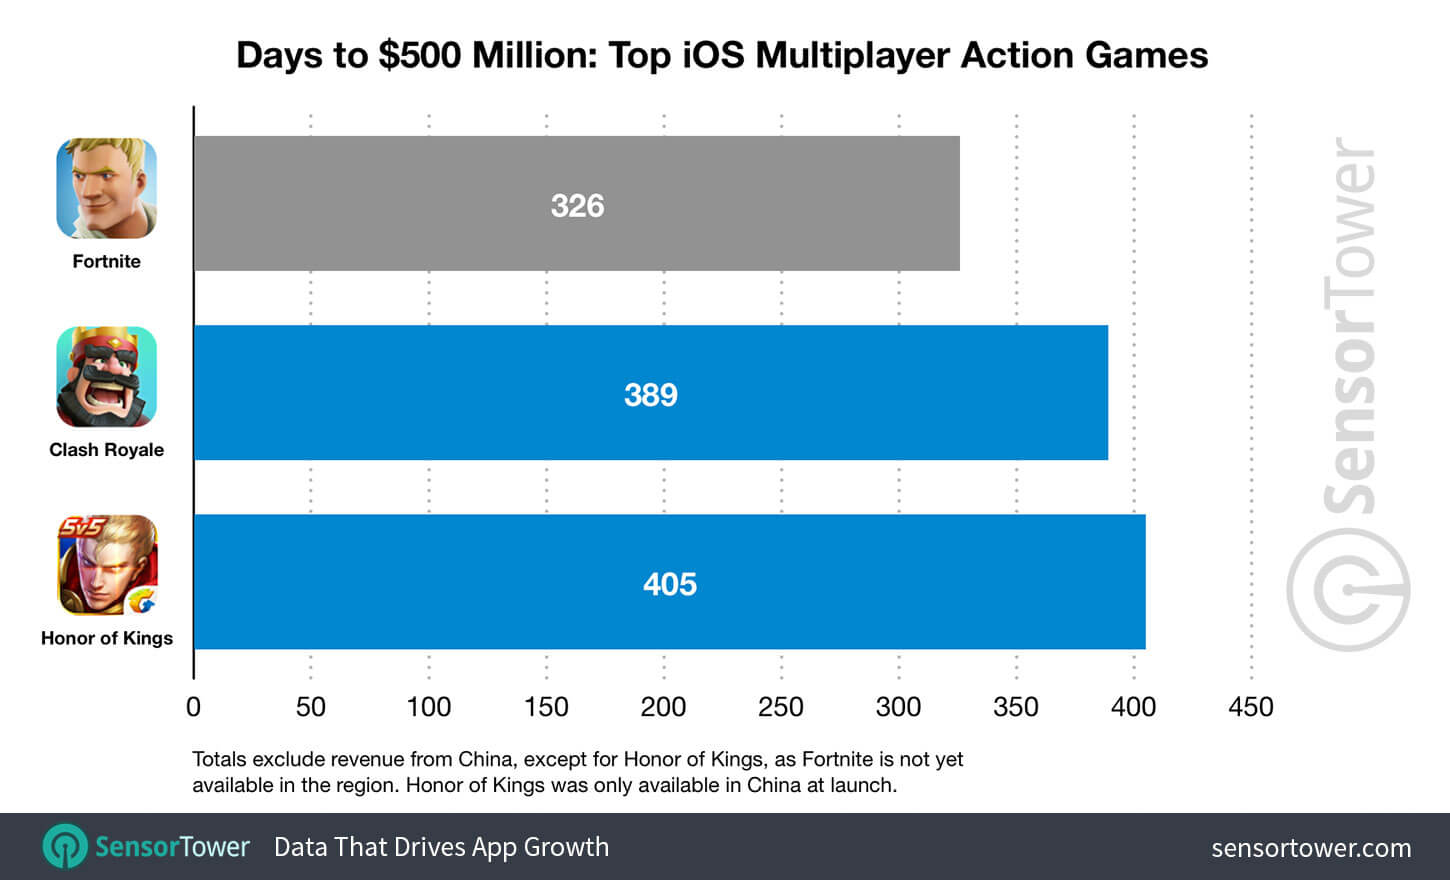 Fortnite has surpassed $500 million in iOS revenue in record